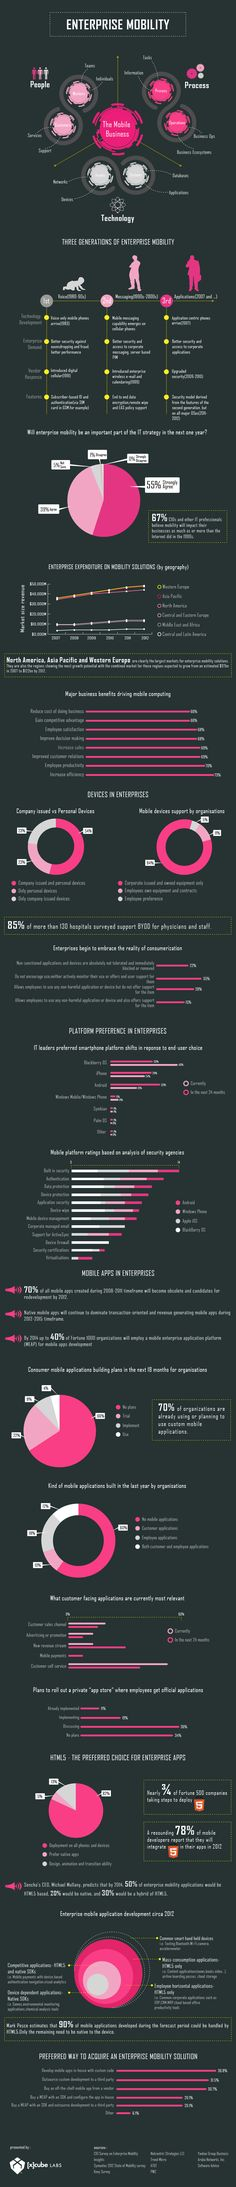 An Infographic by [x]cube LABS on Enterprise Mobility